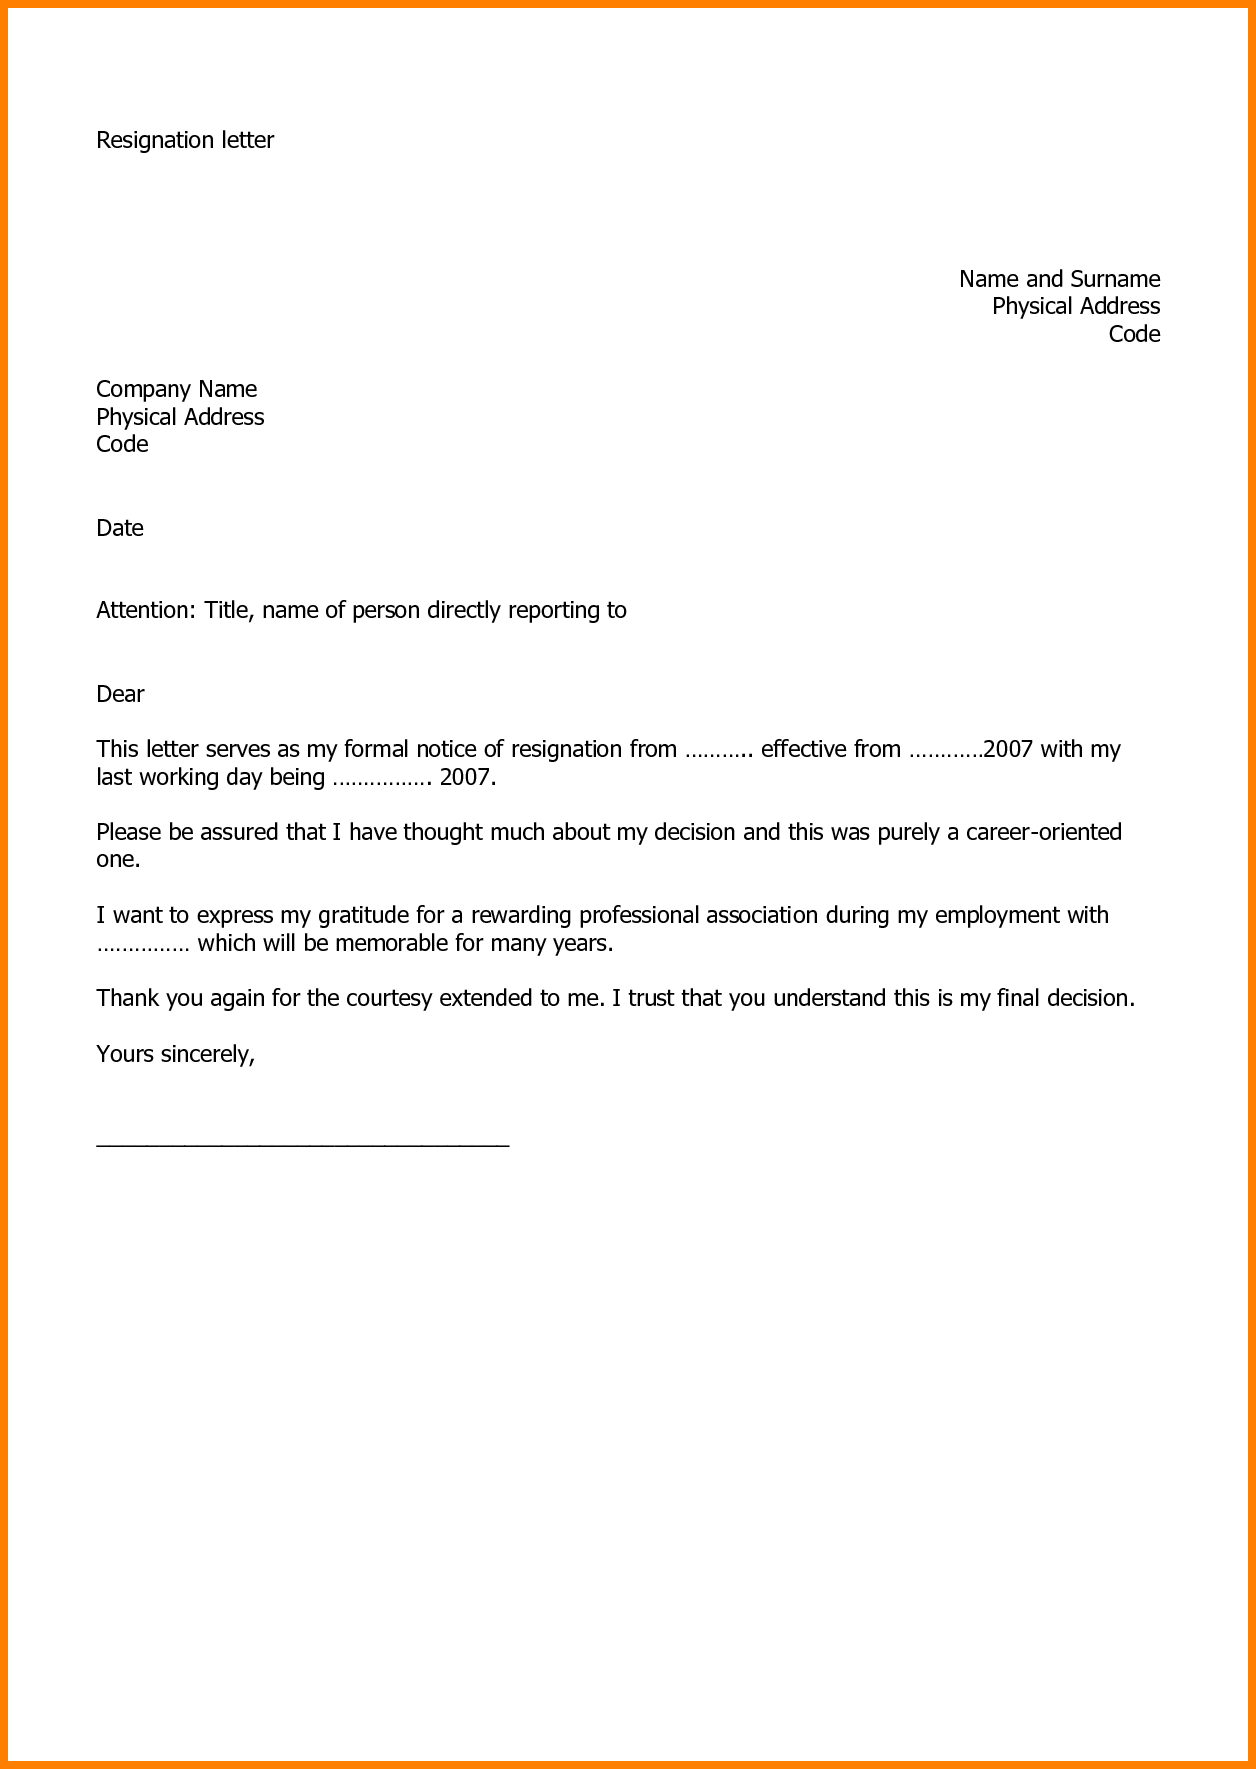 resignation letter quitting job  30 New Quitting Job Letter Example (With images) | Job ..